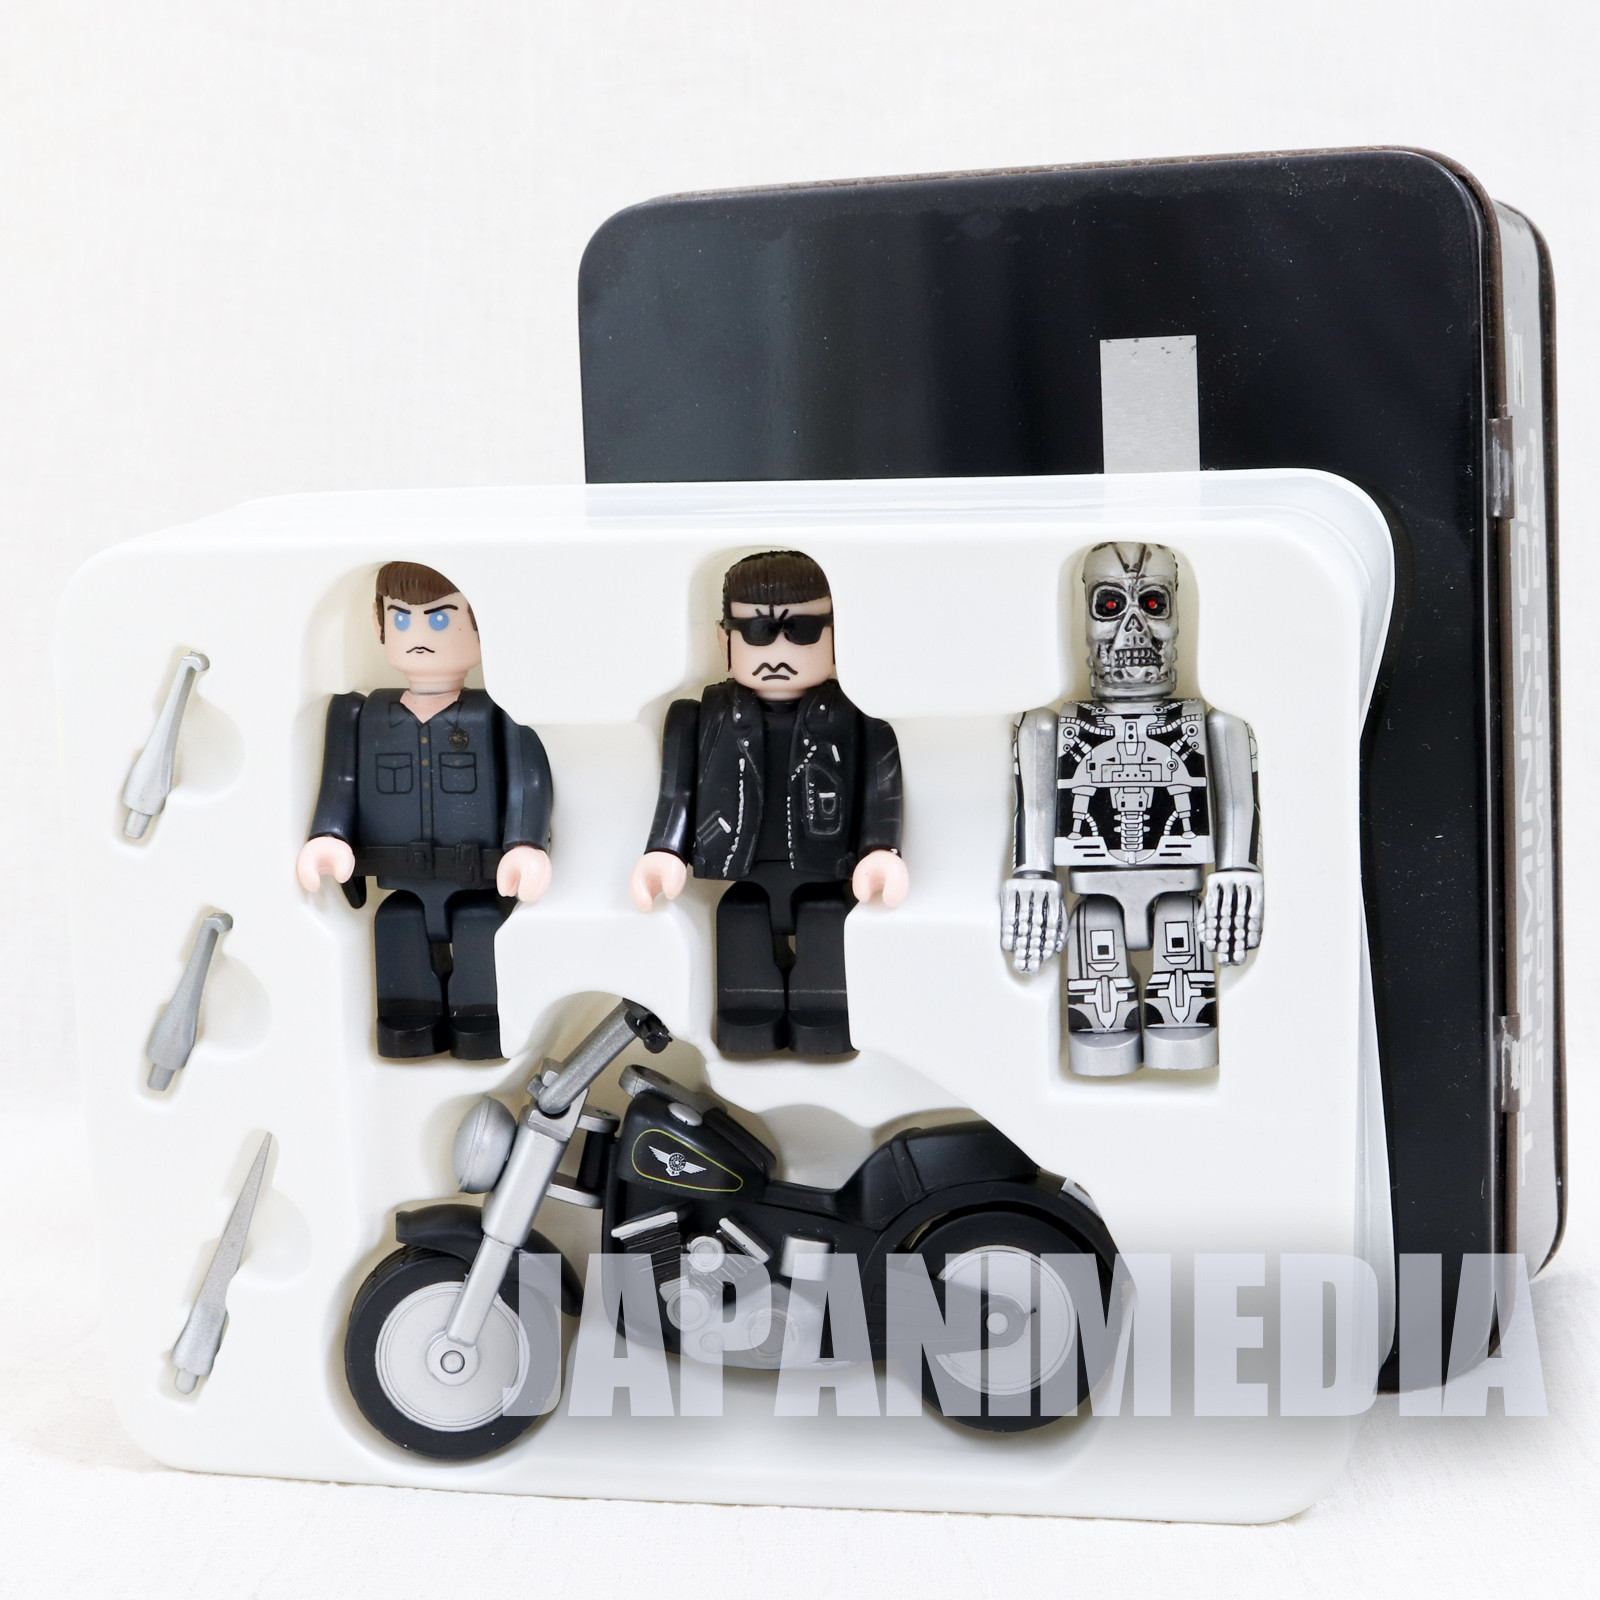 T2 Terminator Cube Figures with Bike Tin Can Set